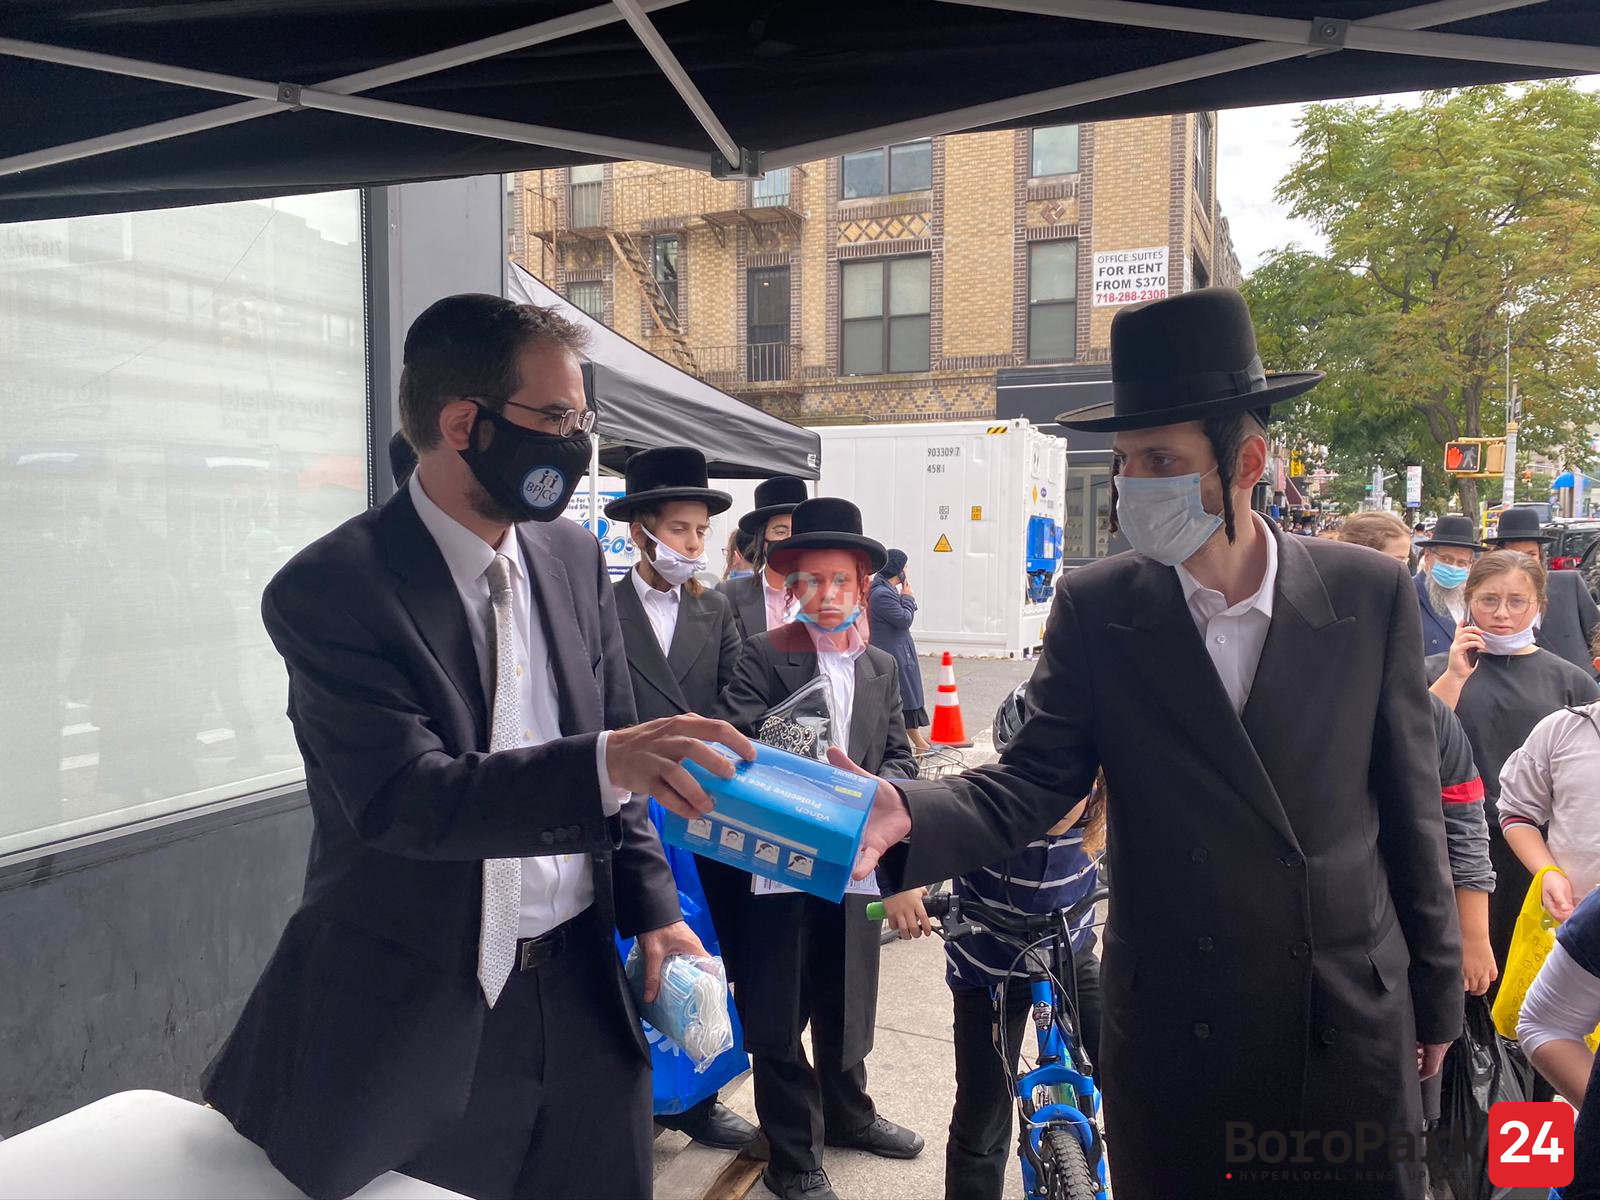 Councilman Yeger  Replaces Fake News by Distributing 418,000 Masks